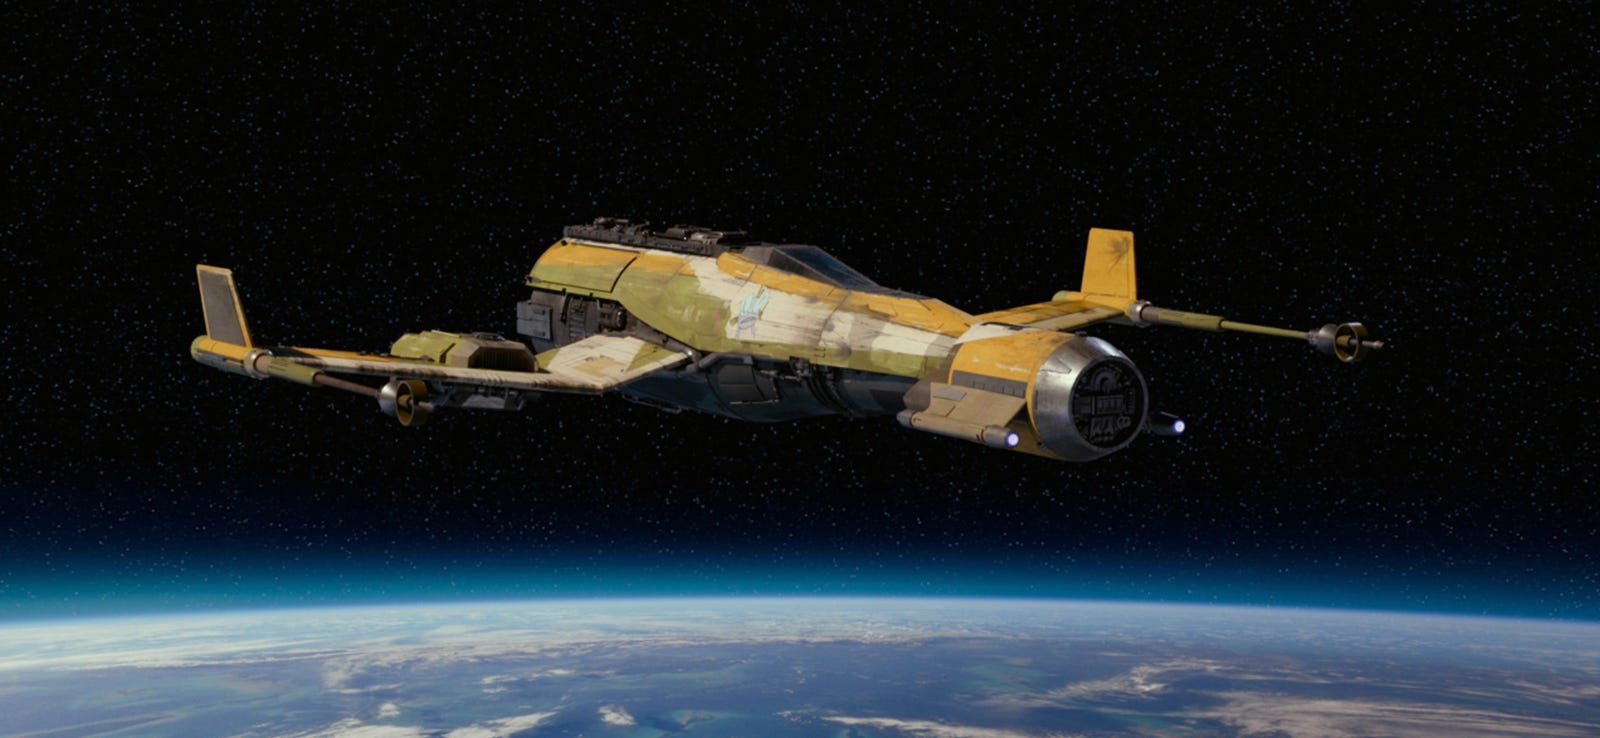 The Fireball from Star Wars Resistance, as recreated for The Rise of Skywalker.